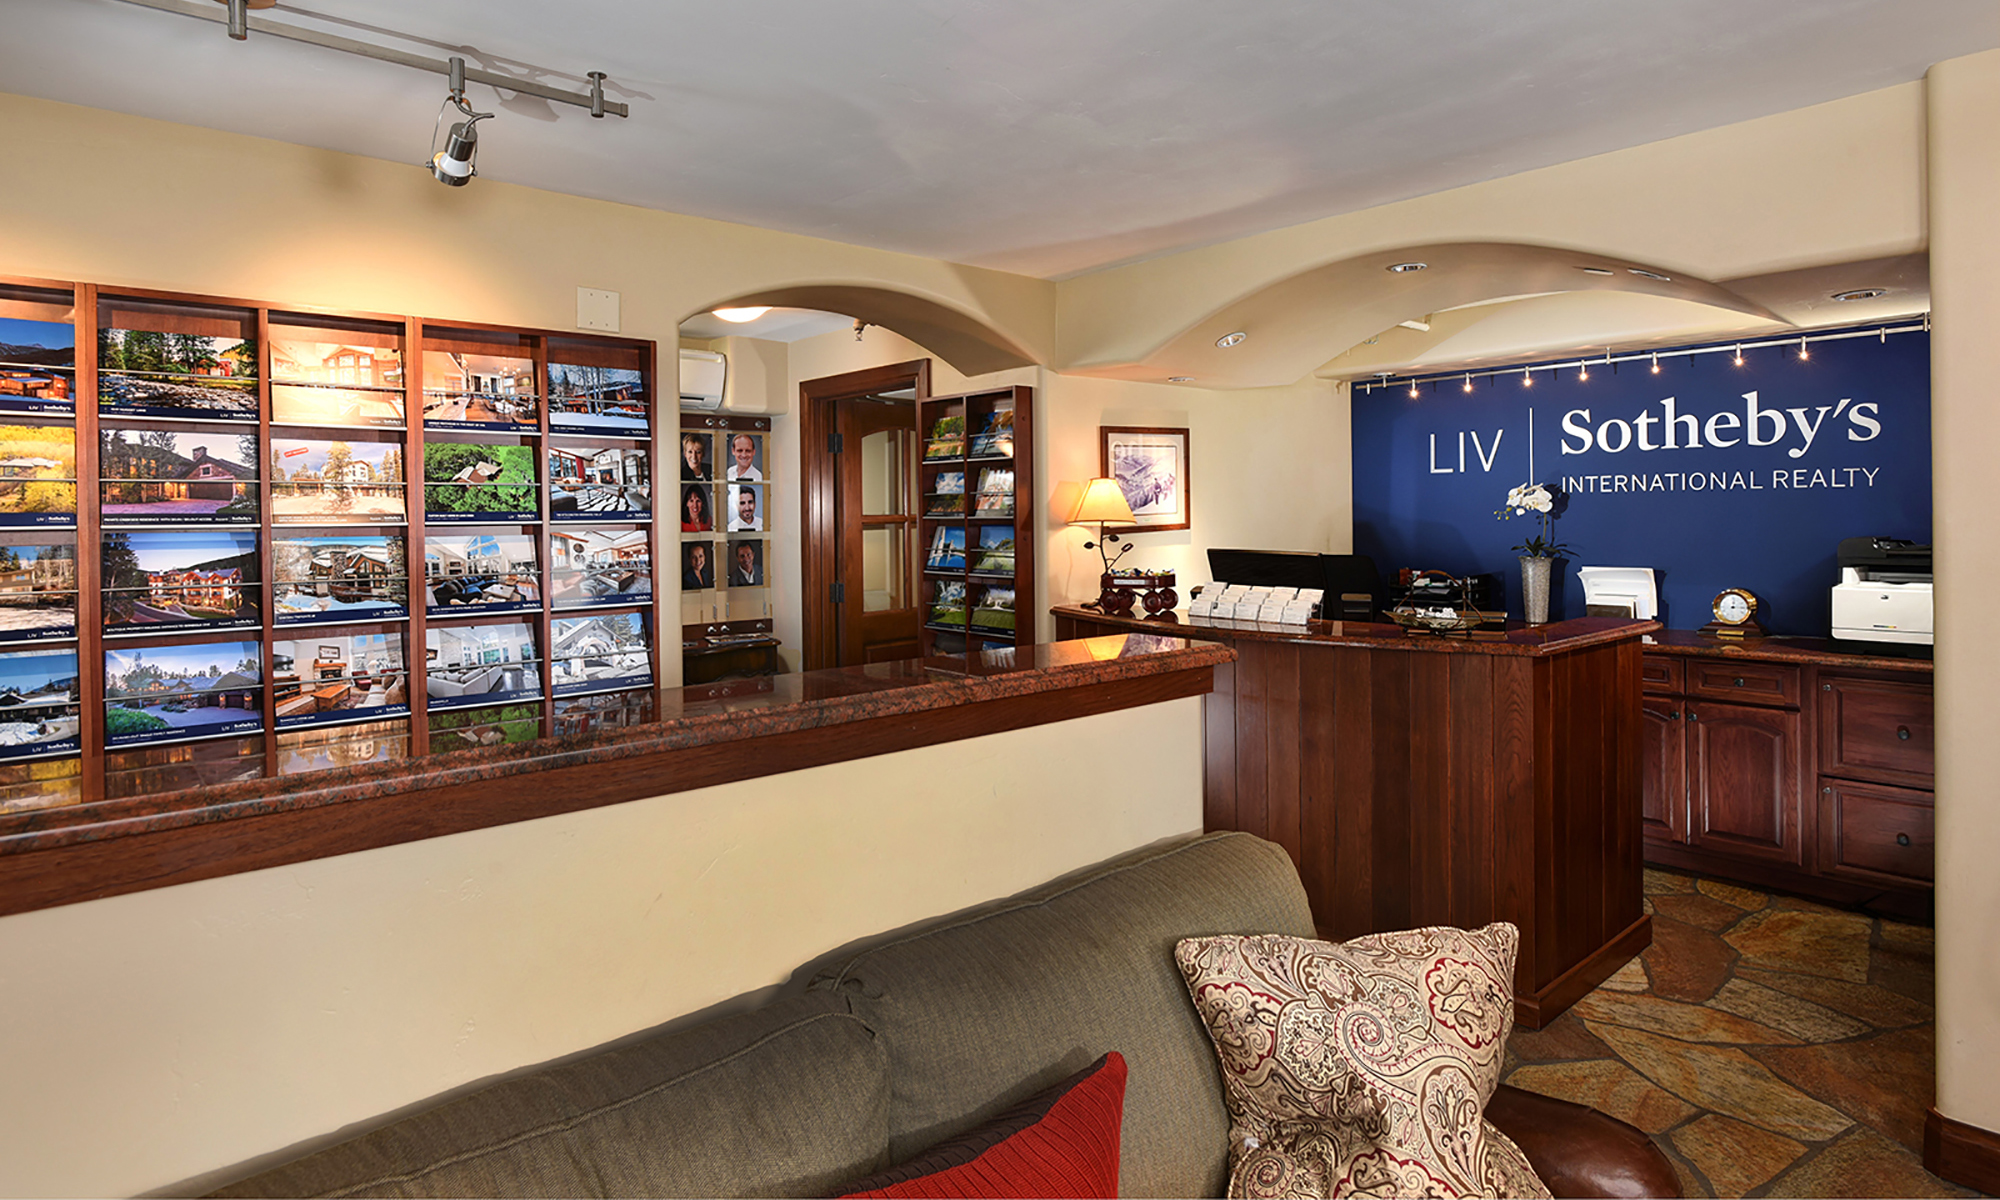 Office LIV Sotheby's International Realty Photo